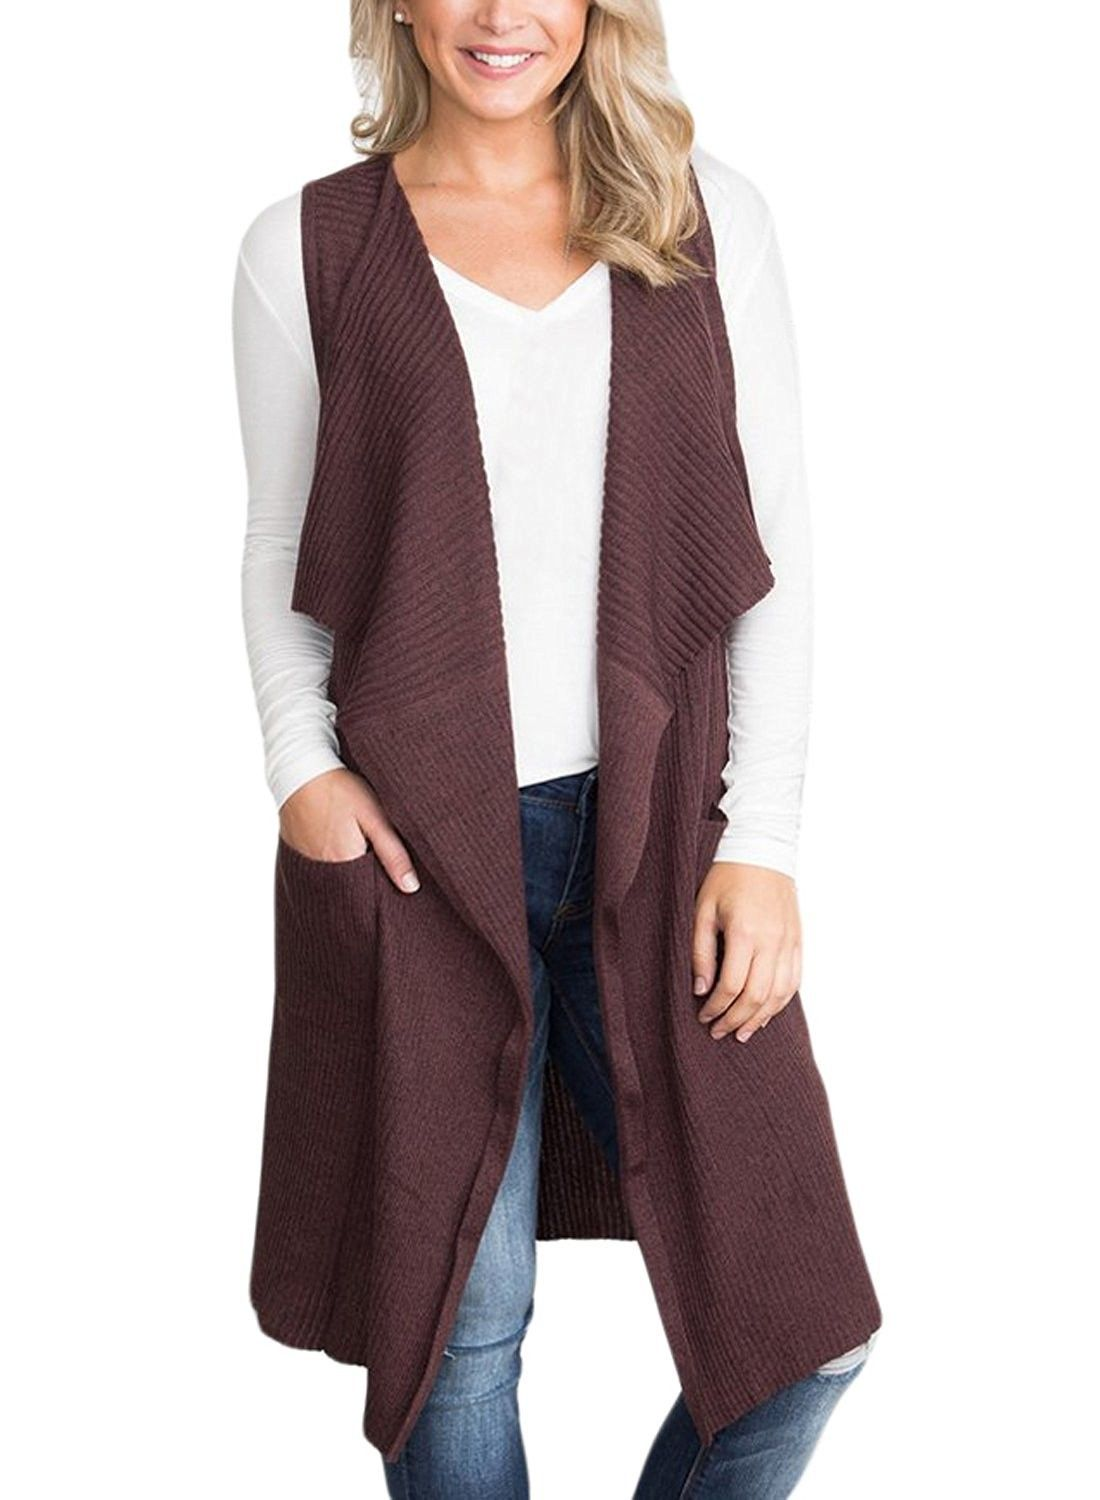 FTCayanz Womens V Neck Jumpers Winter Sweater Sleeveless Vest Cardigan with Pockets